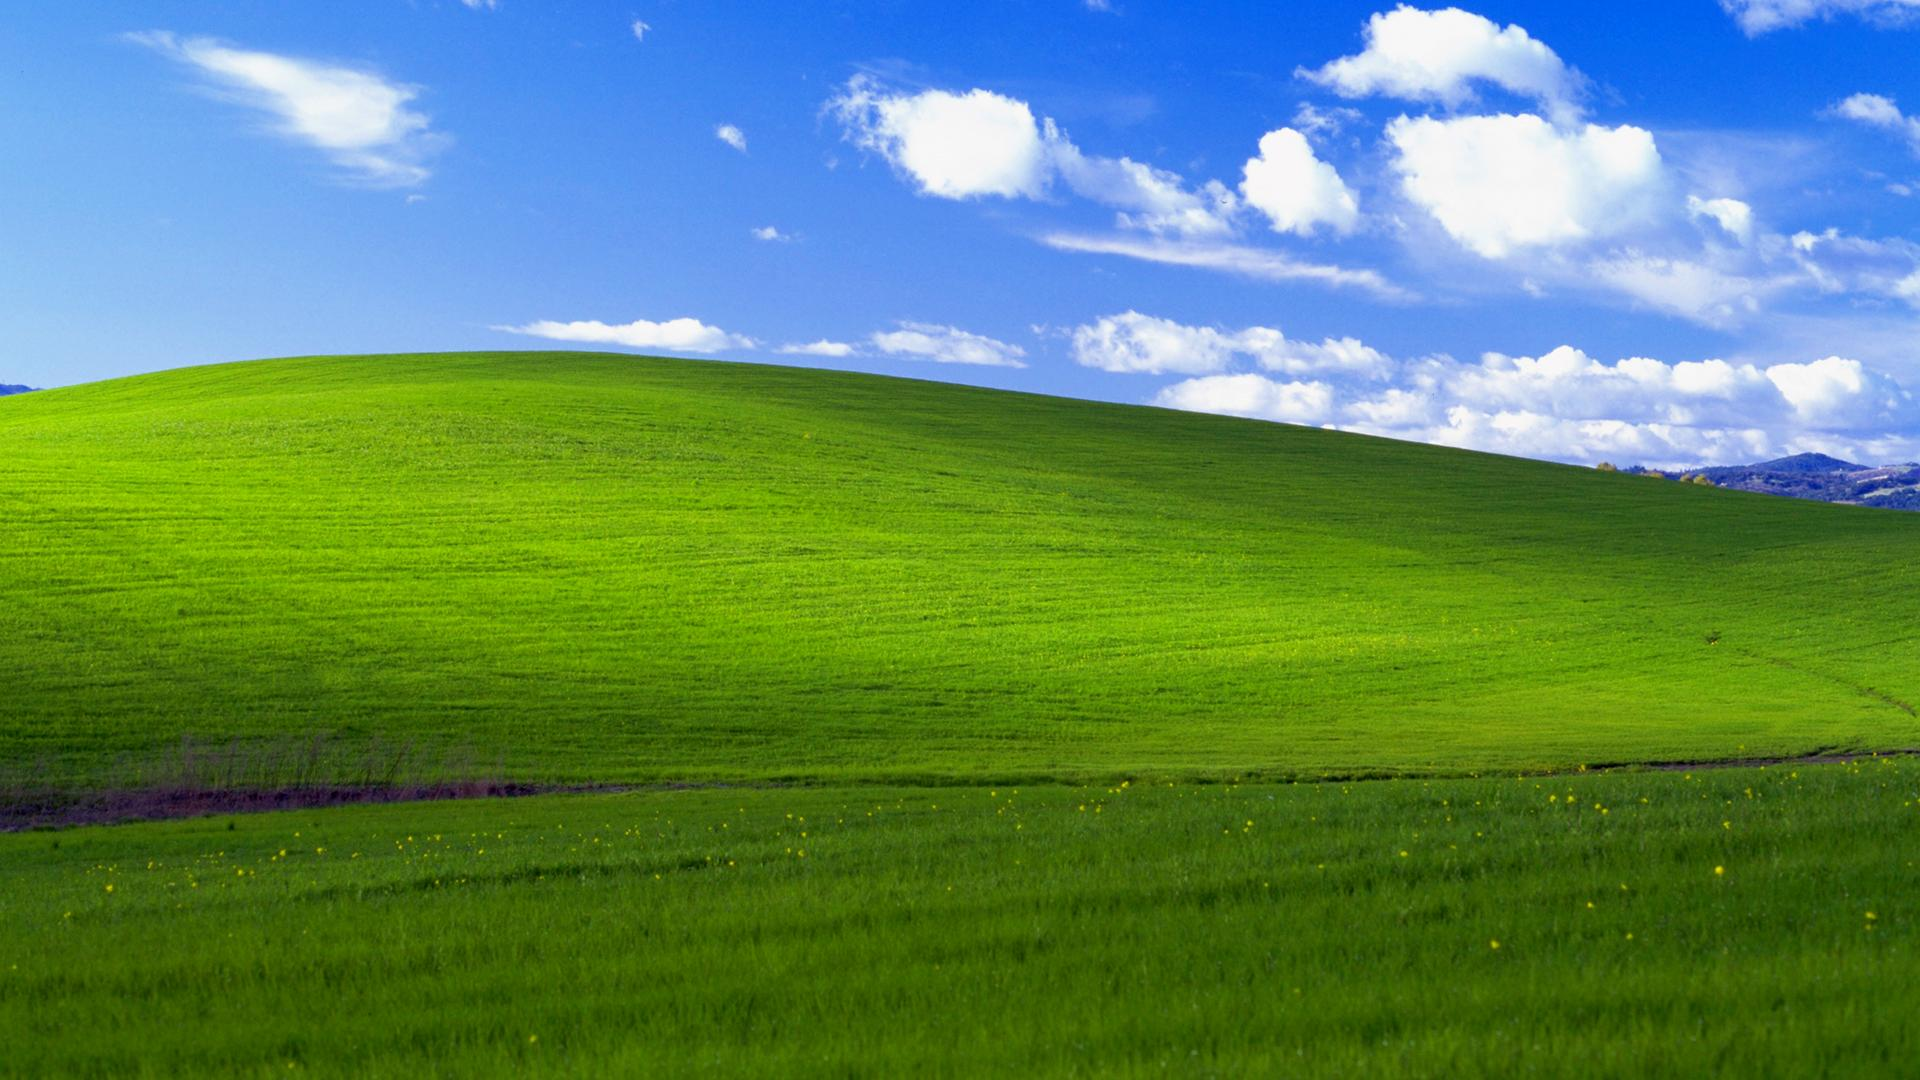 the most famous windows wallpaper ever turns 20